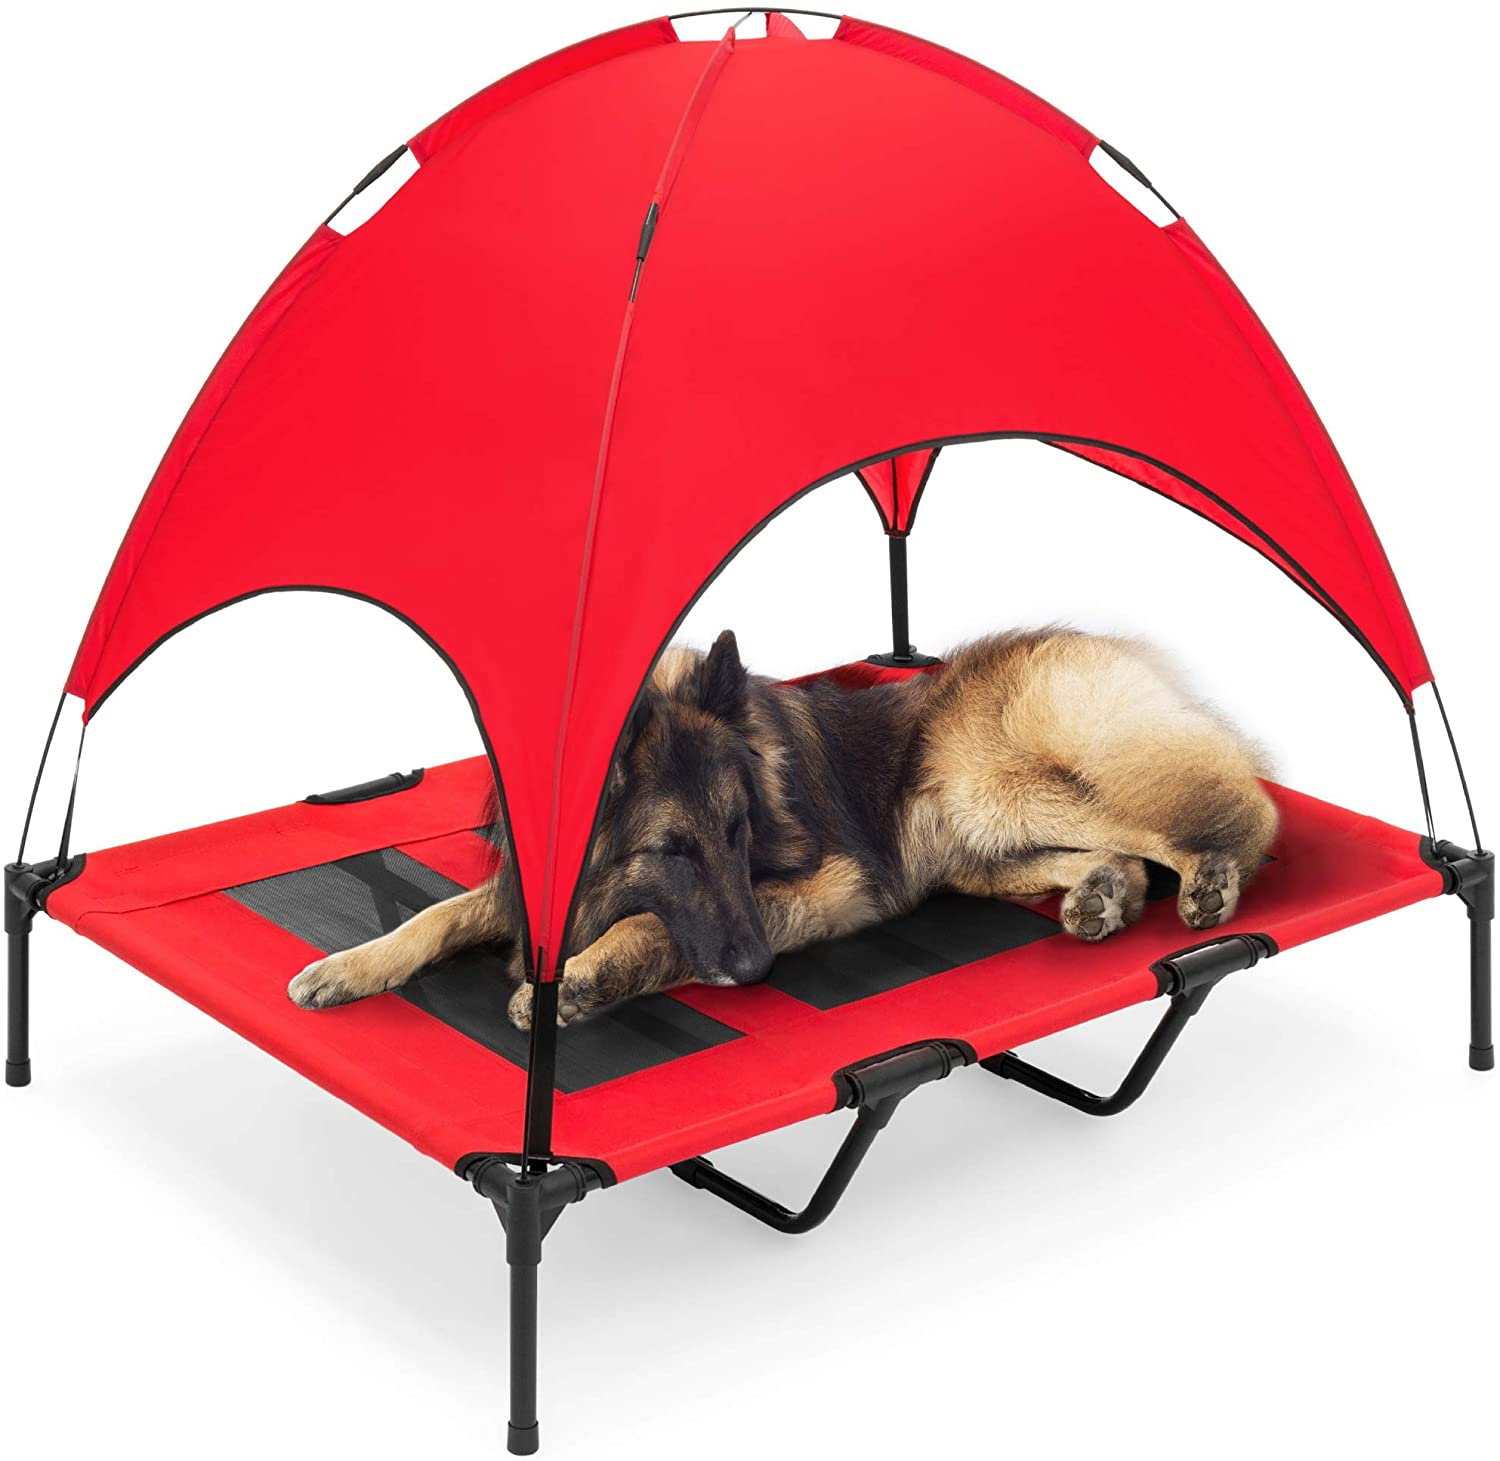 Best Cooling Beds for Dogs feat. BEST CHOICE PRODUCTS Elevated Cooling Dog Bed with Canopy, image via Best Choice Products/Amazon